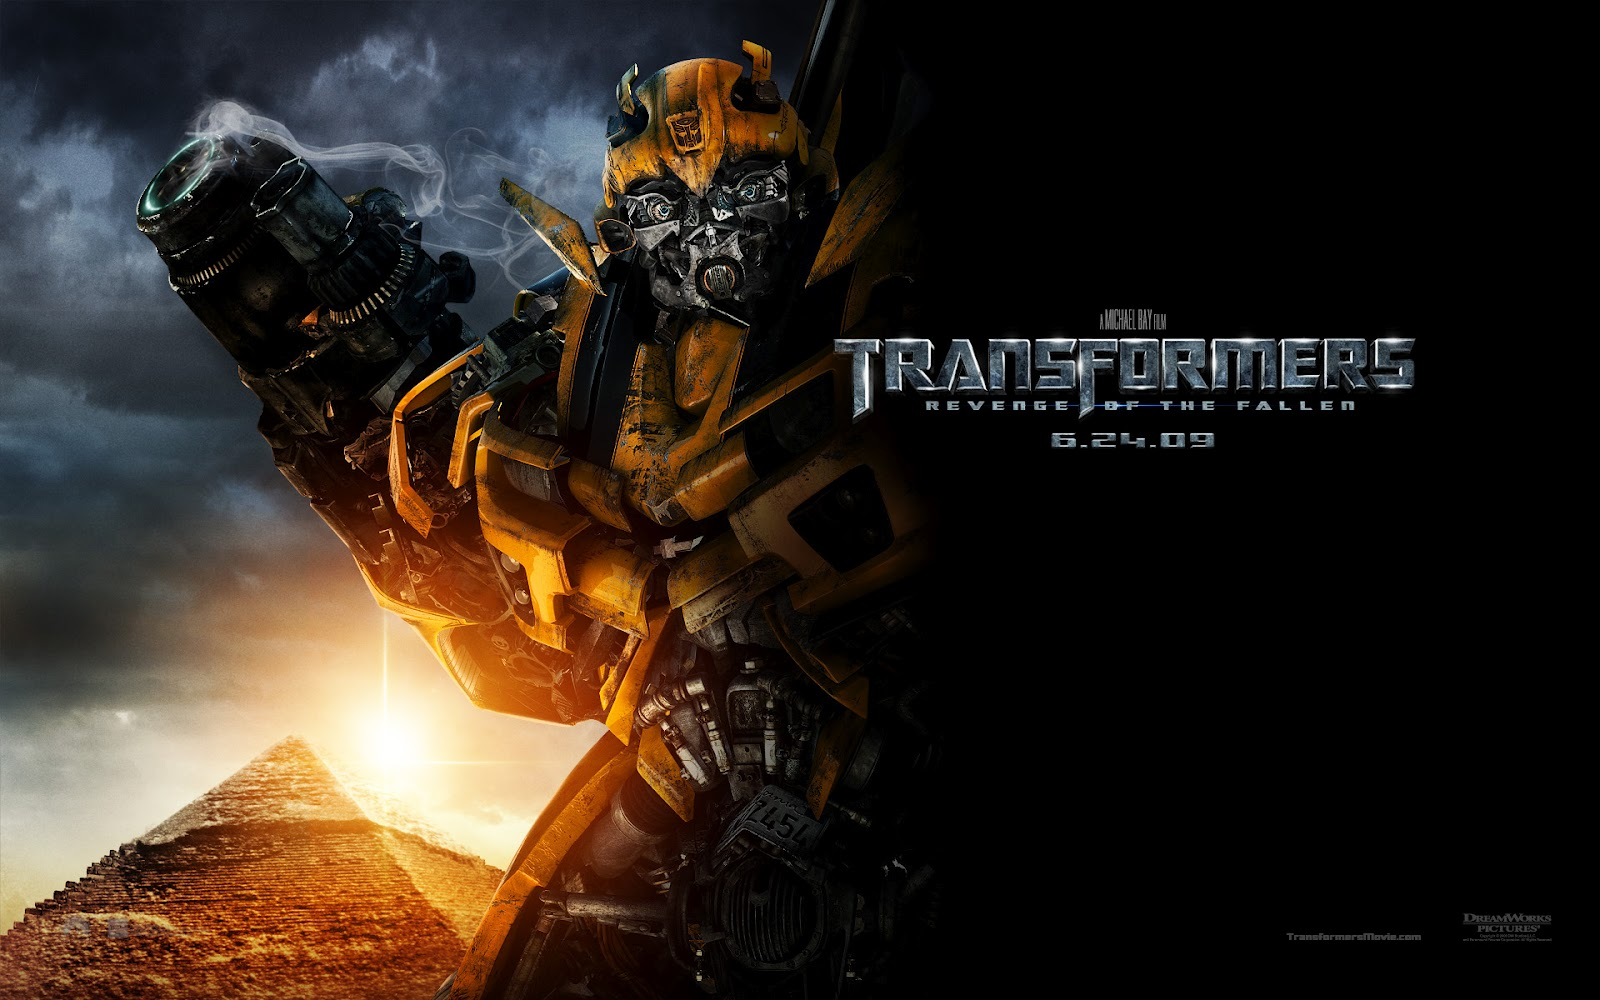 Transformers 2 wallpaper top hd wallpapers - Transformers desktop backgrounds ...